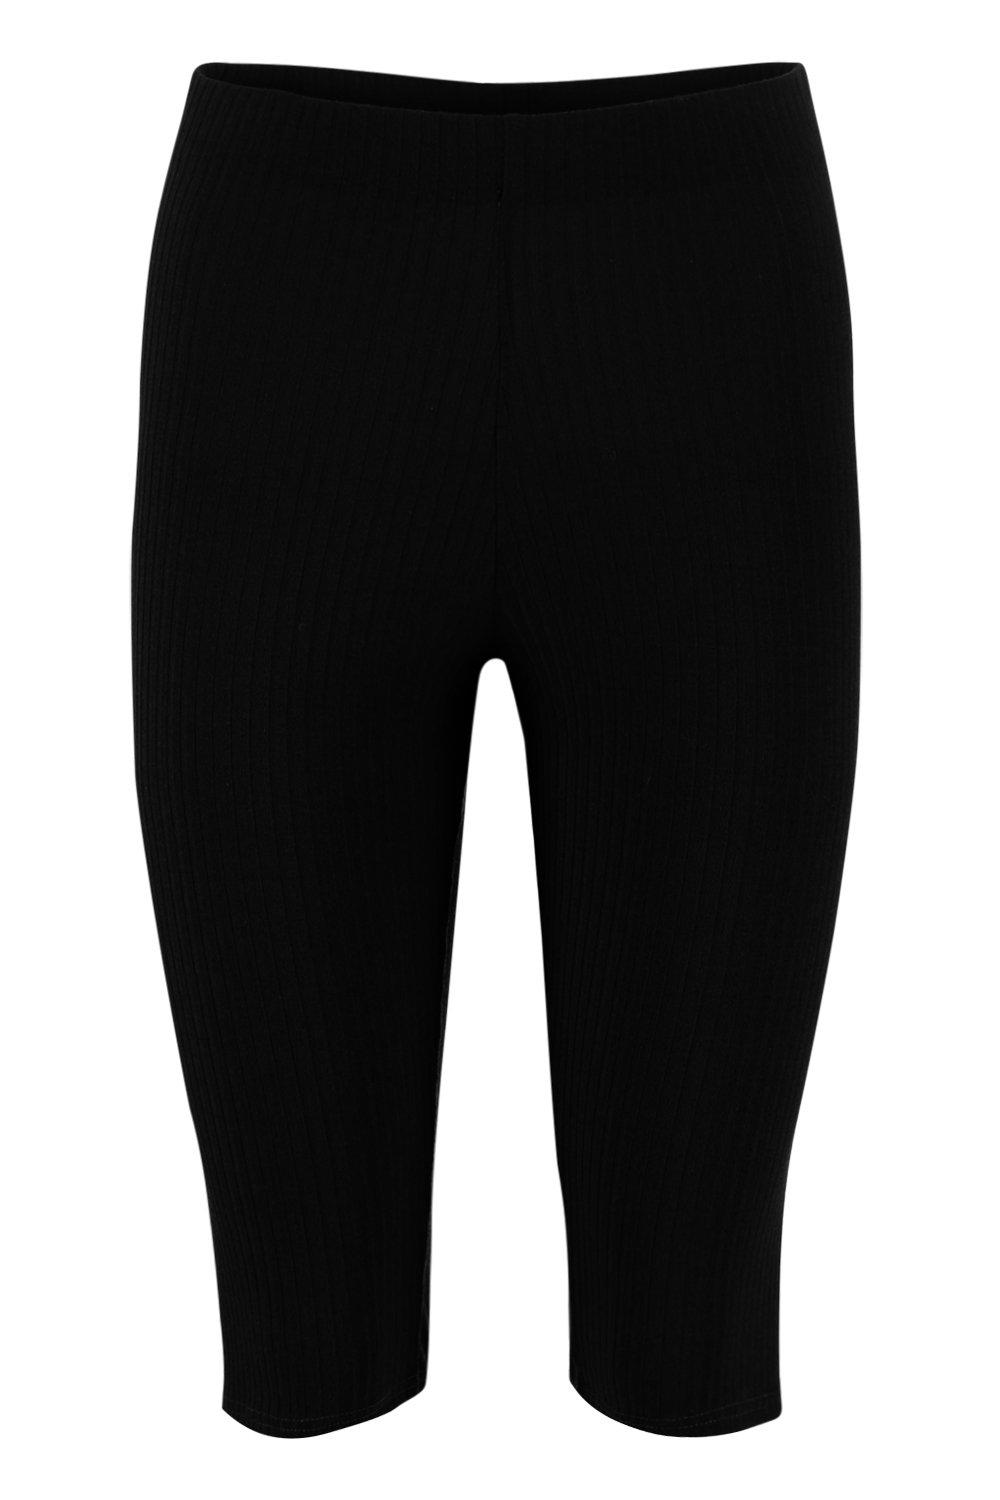 Cycling Knit Short black Rib Longline pHqCYPwp0